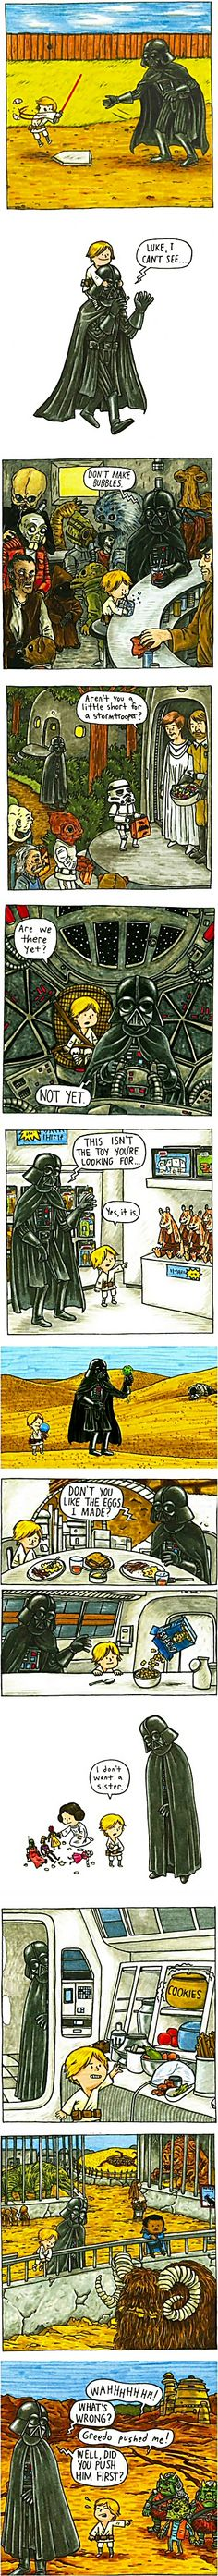 Star Wars — Revenge of the Jedi Toddler | What if Darth Vadar had been a good dad?